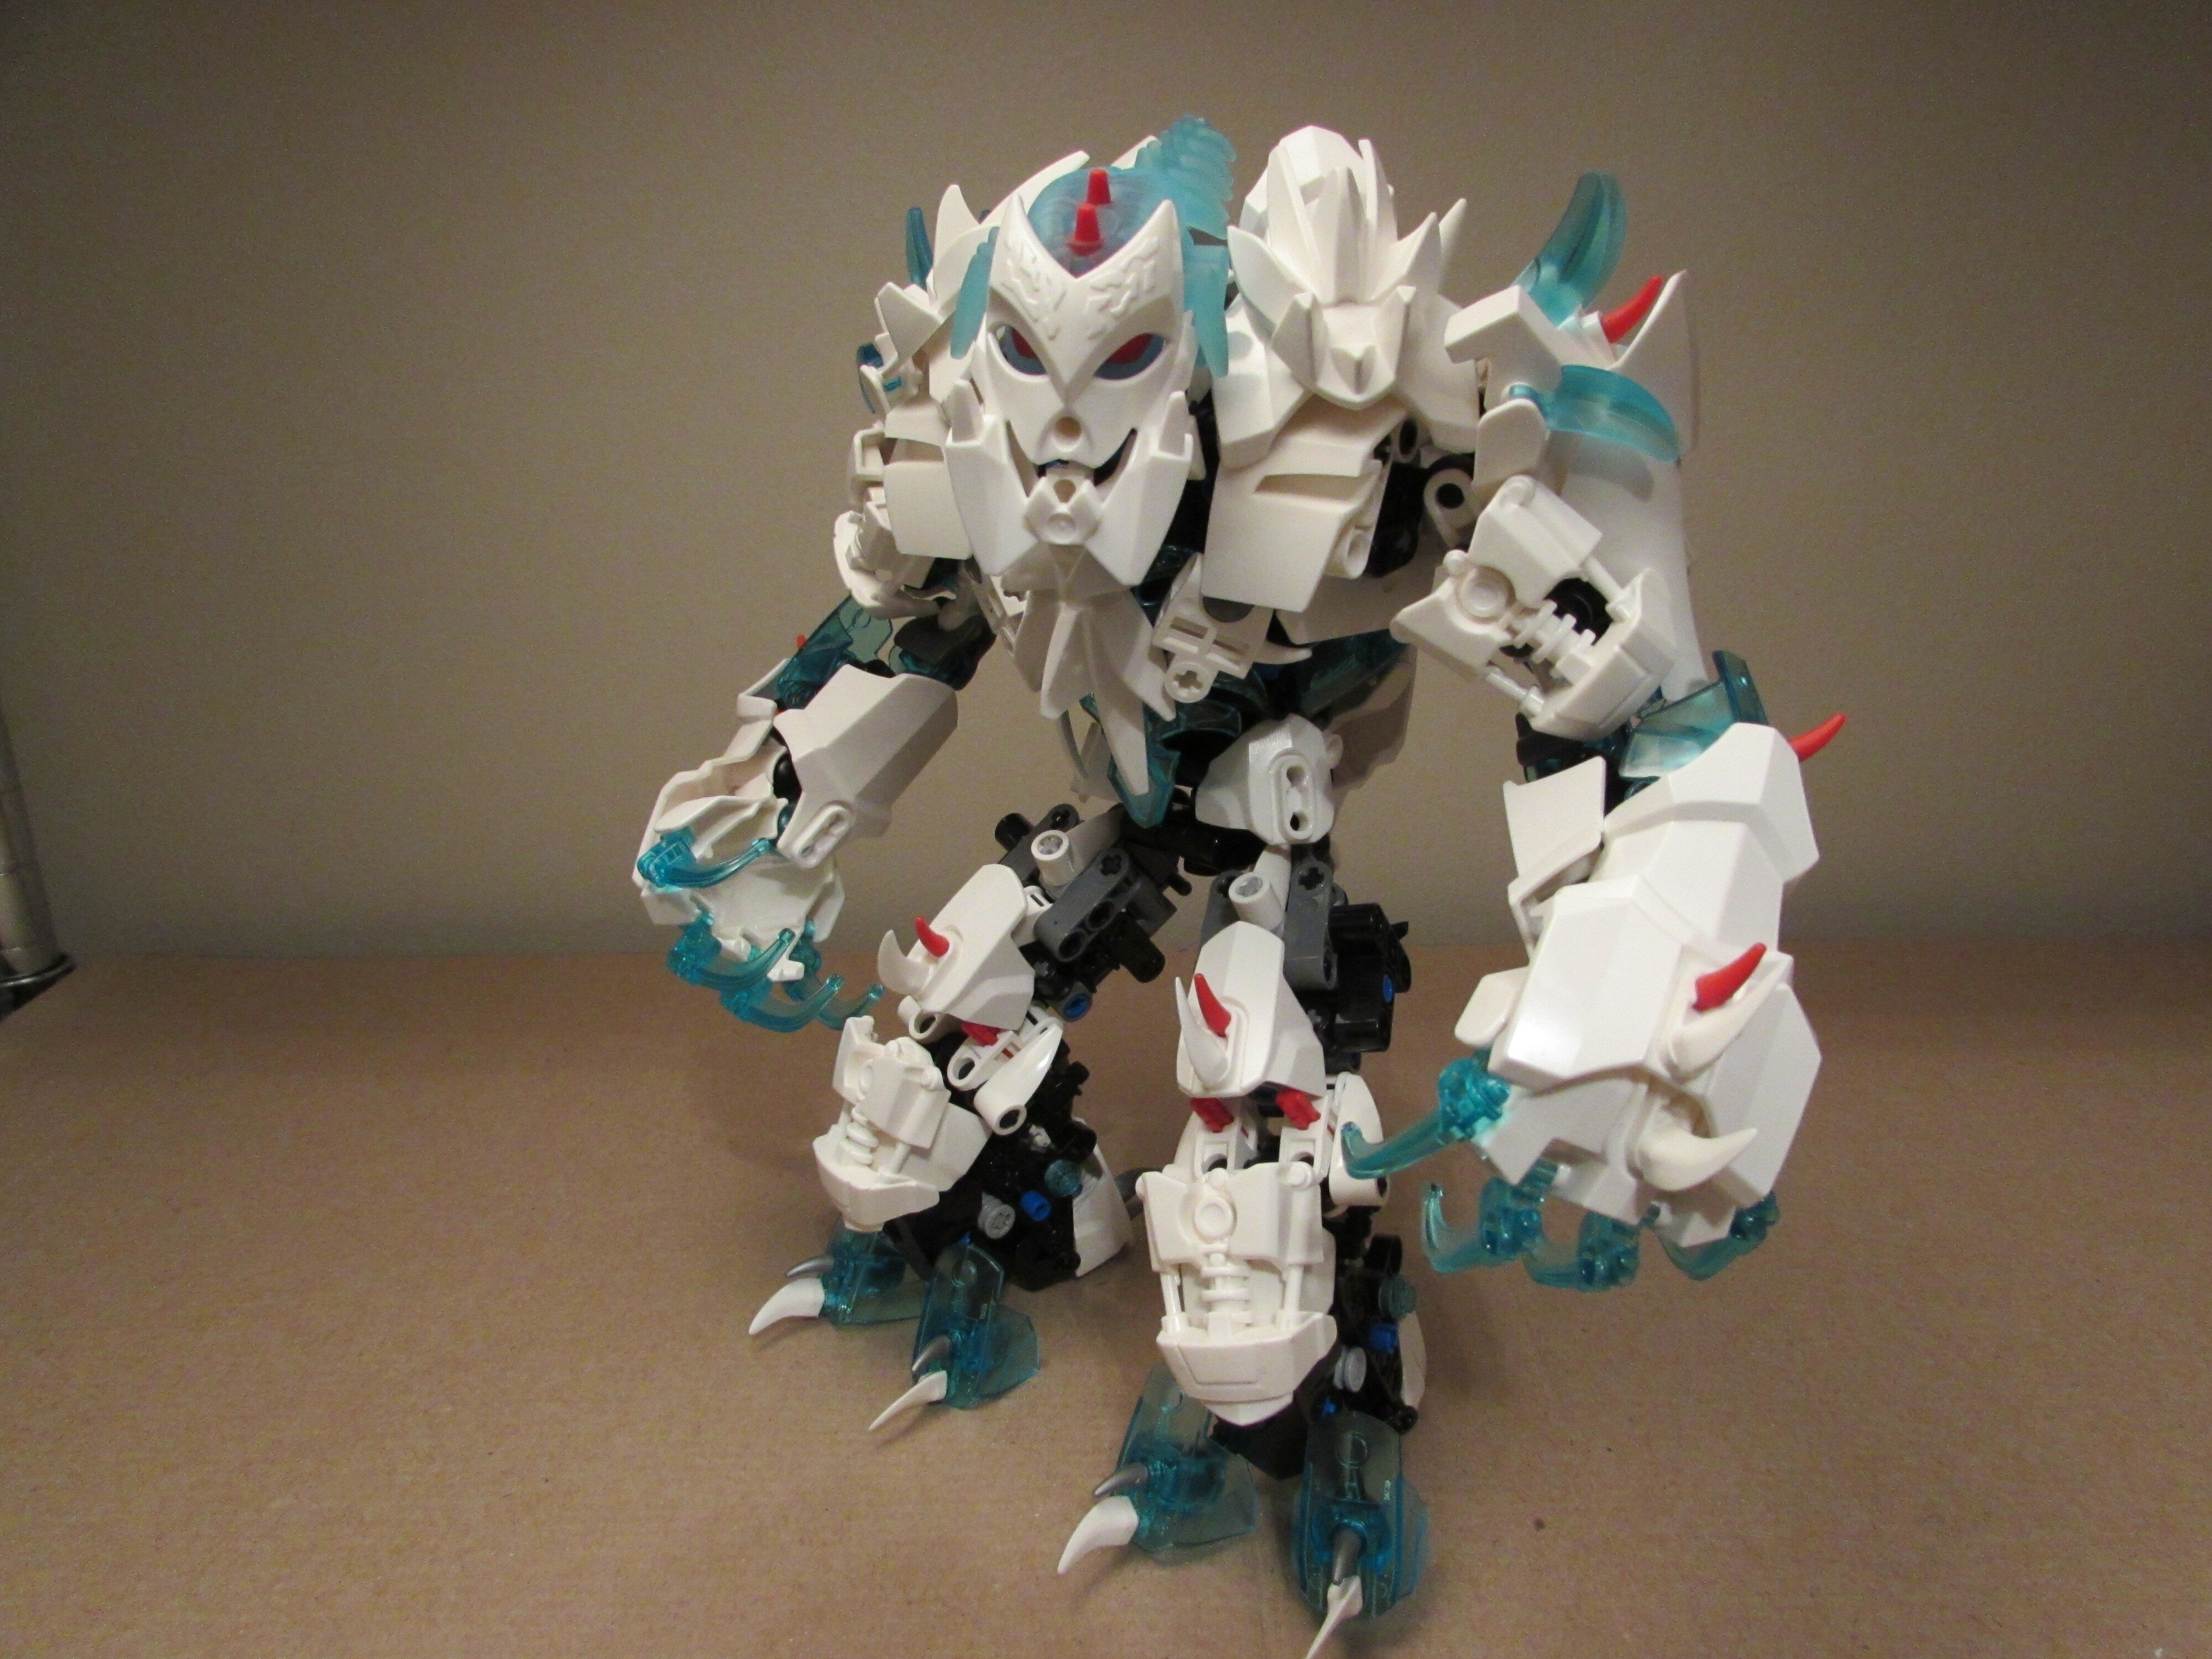 Ice Beast King Of The Frozen Lego Creations The Ttv Message Boards